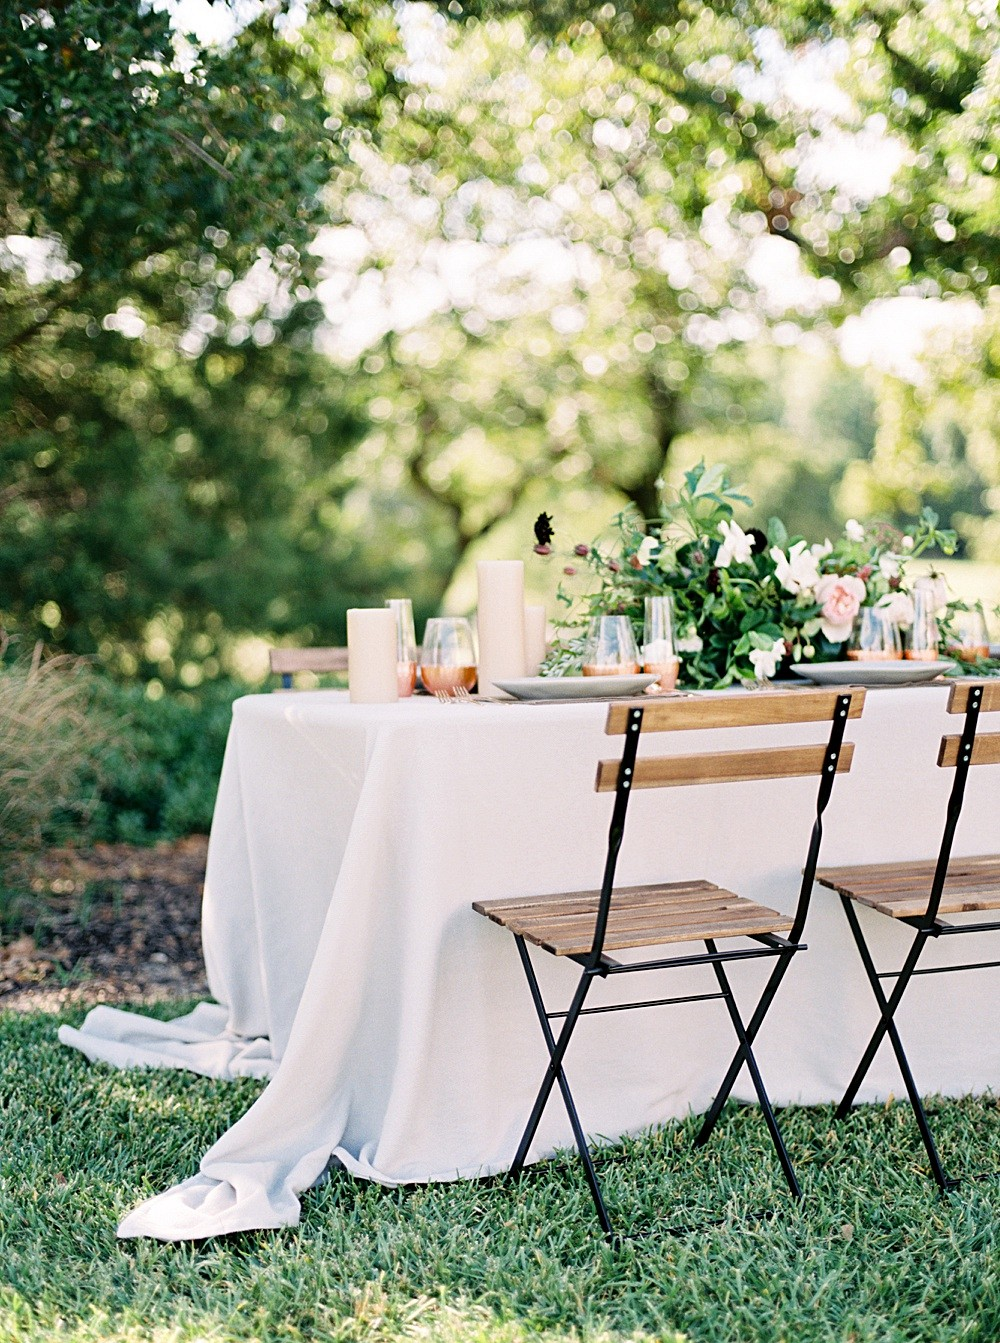 Clean, modern wedding inspiration with copper accents